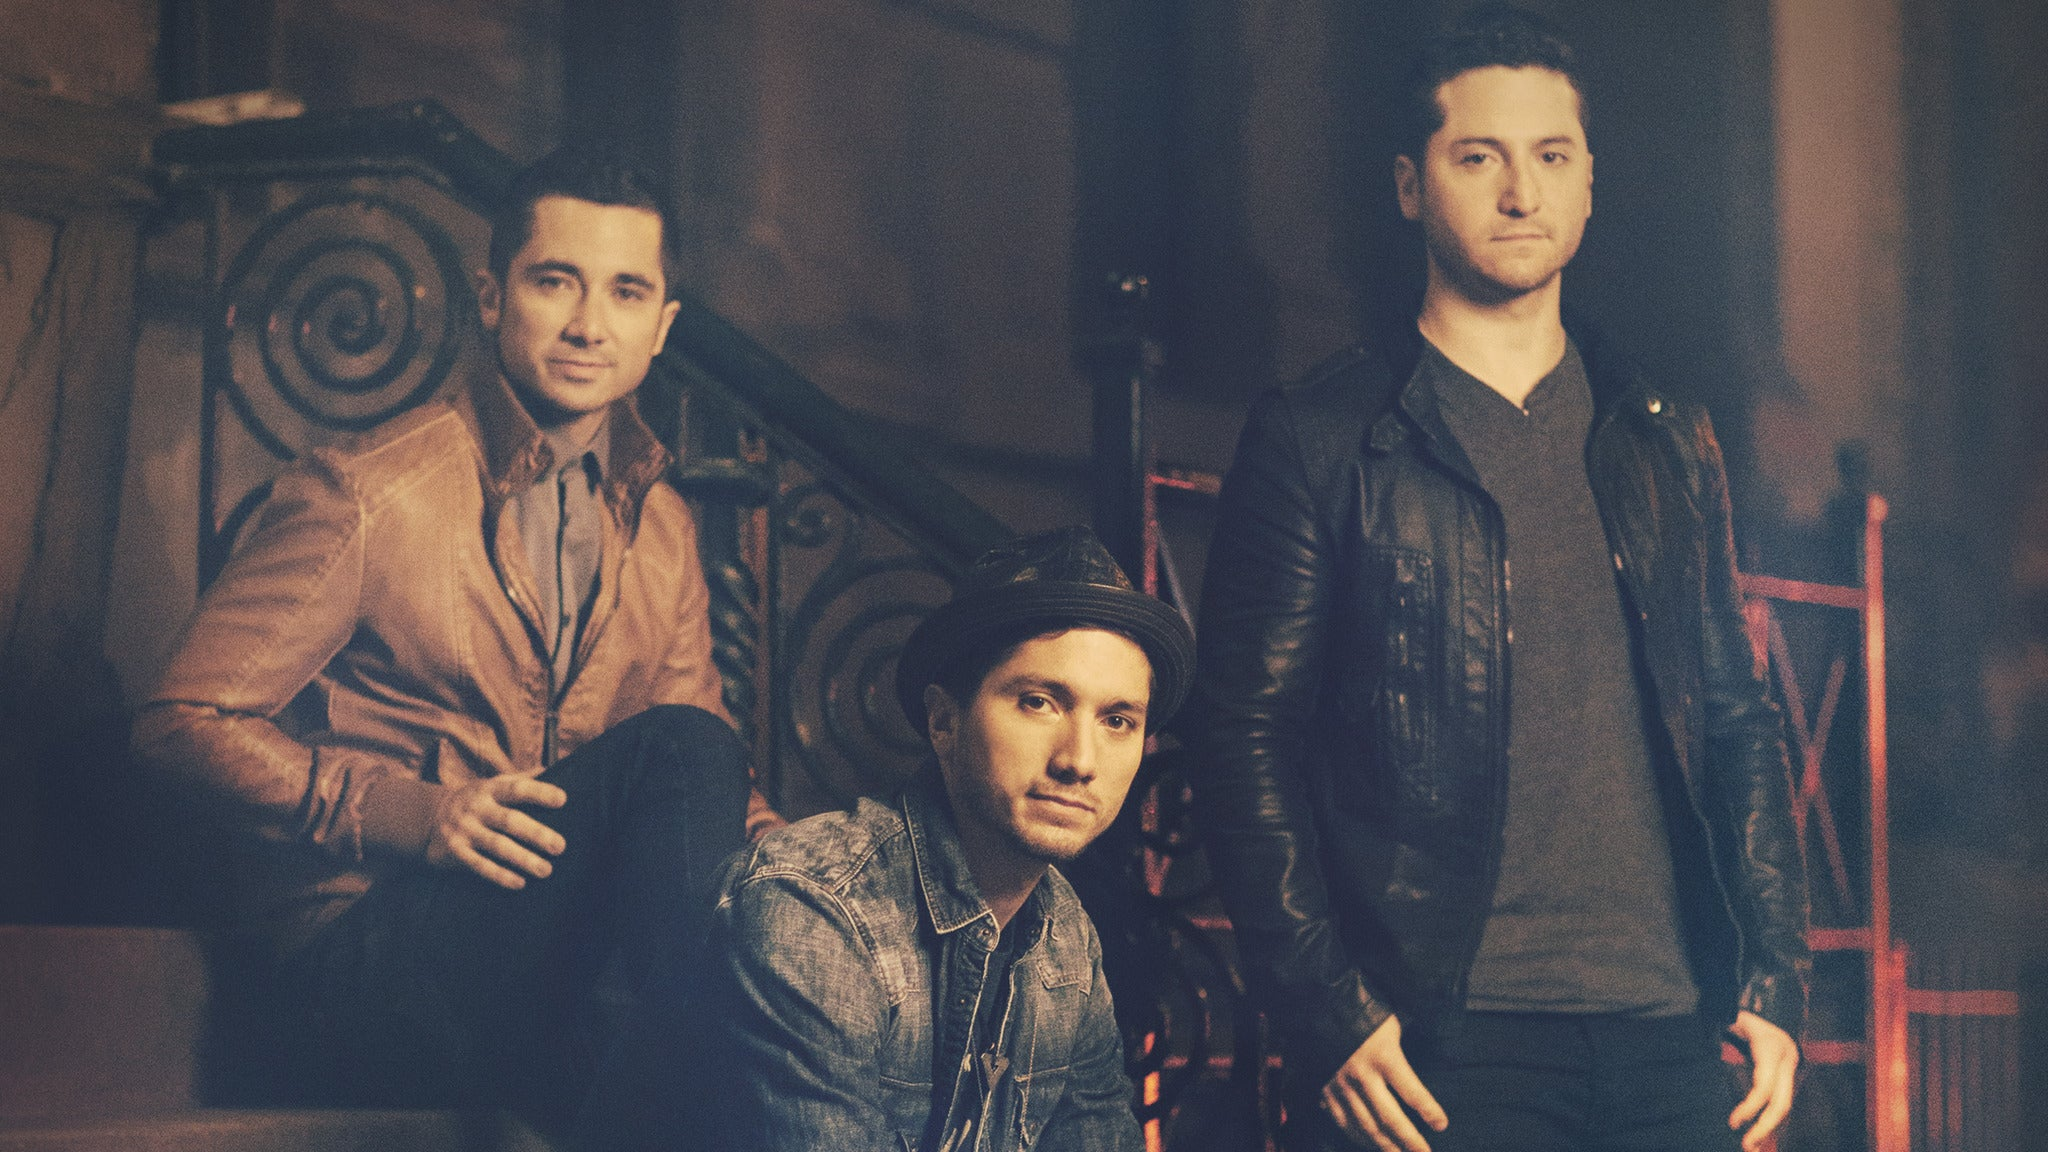 Boyce Avenue at House of Blues Dallas